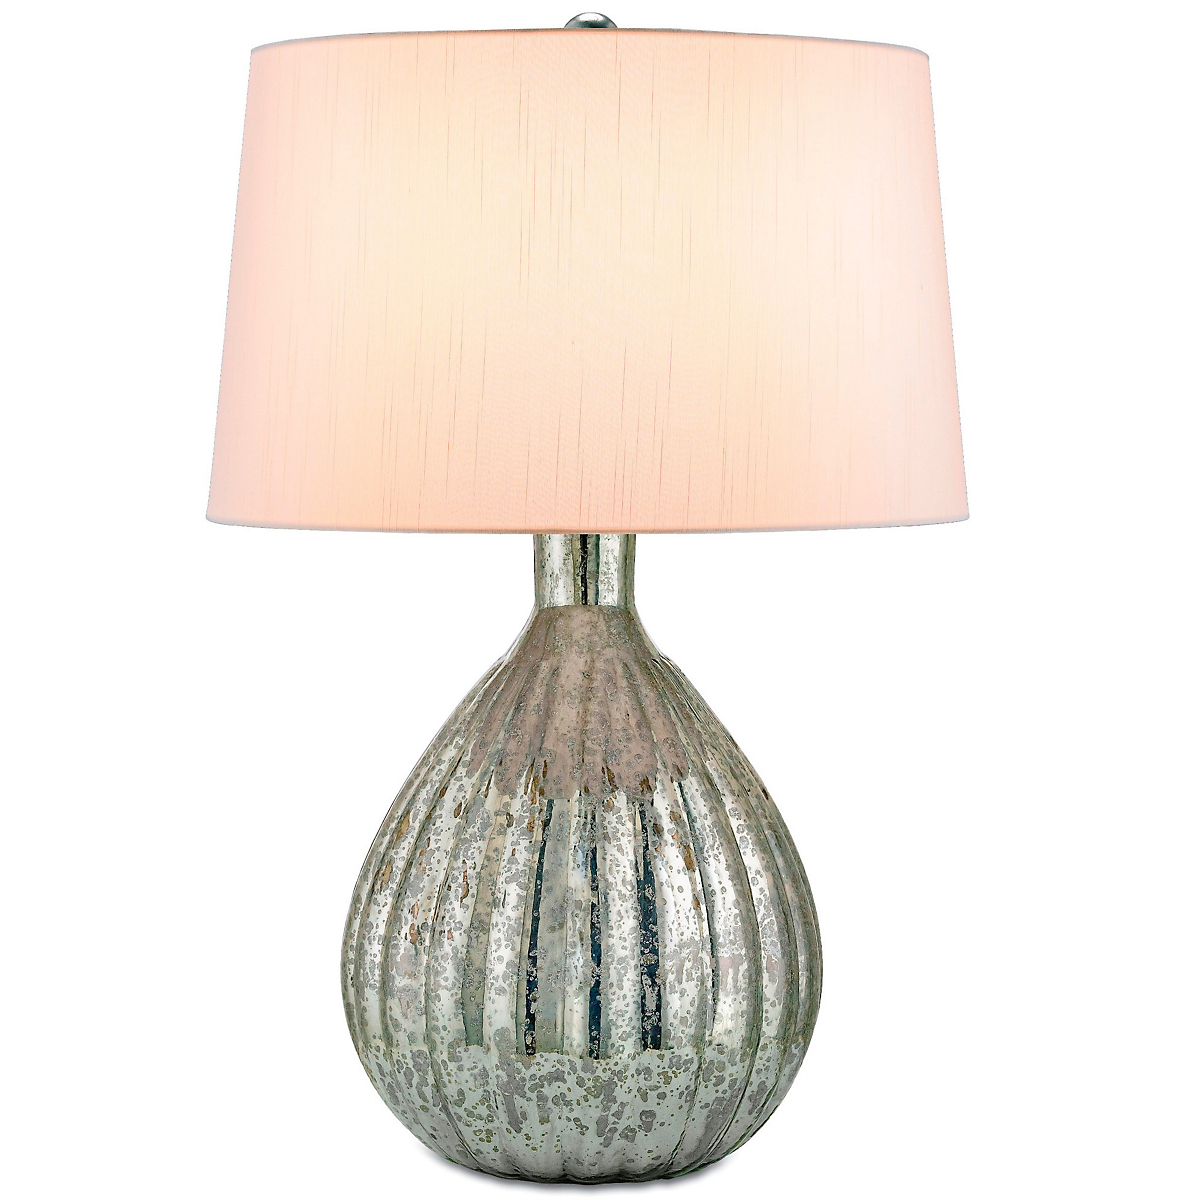 Currey & Company Oxendale Table Lamp, Small